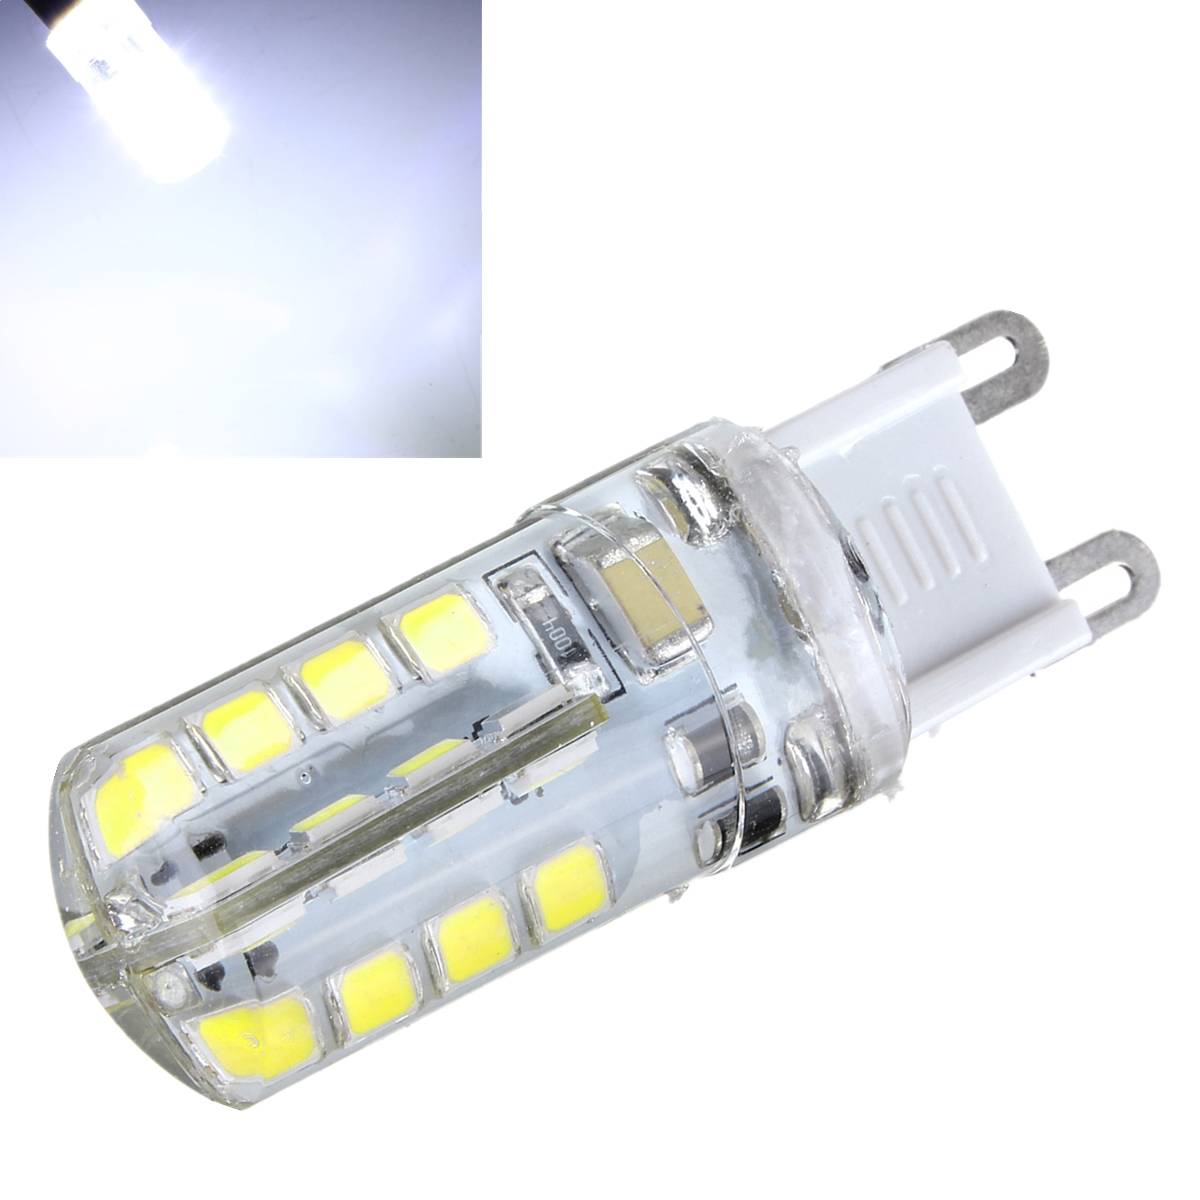 1 4x g9 5w 32 led 2835 blanc chaud ampoule lamp silicone capsule rv voiture 220v ebay. Black Bedroom Furniture Sets. Home Design Ideas